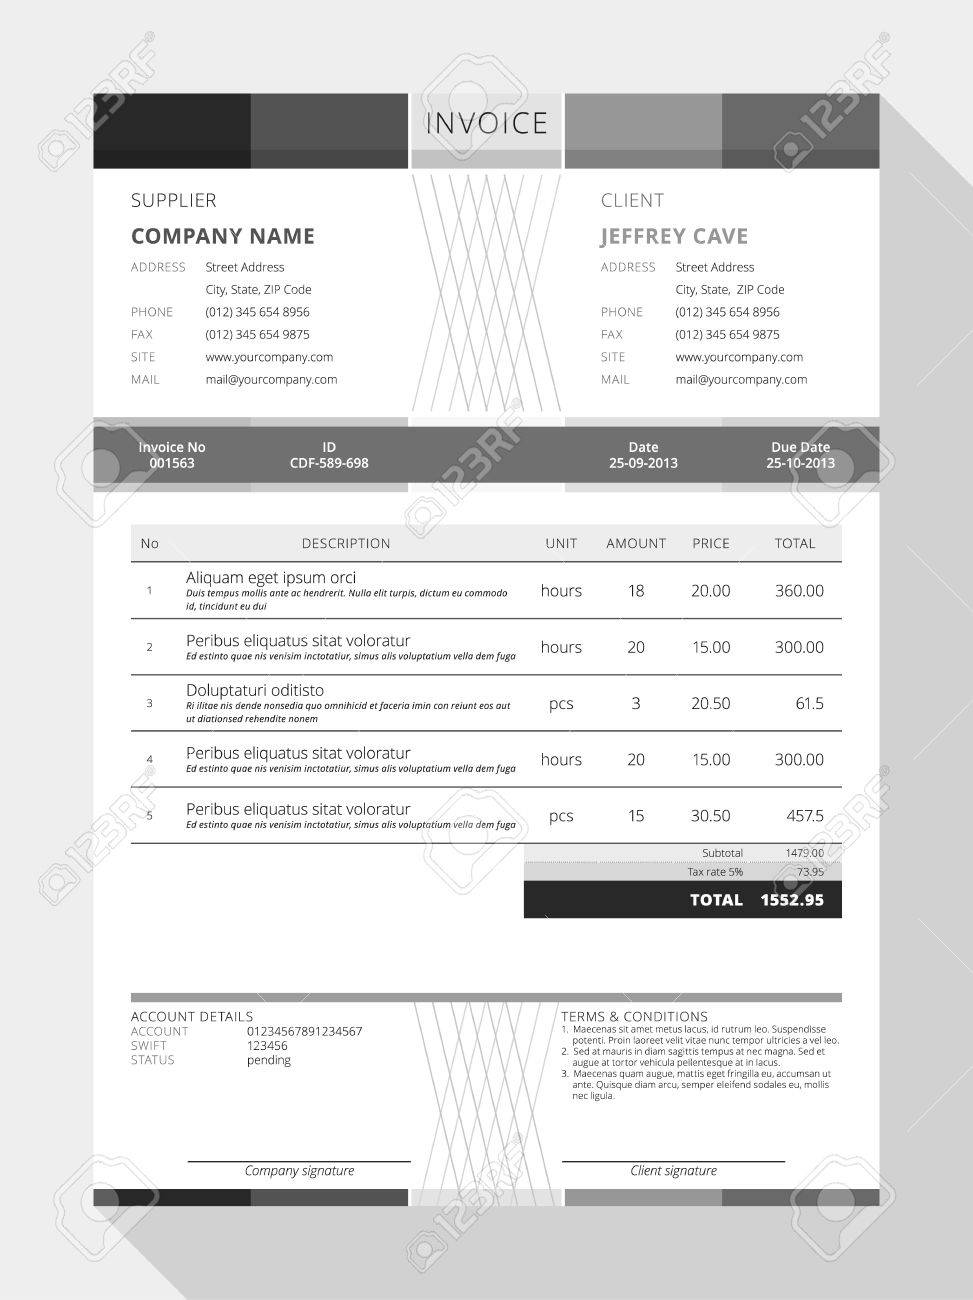 Soulfulpowerus  Marvelous Design An Invoice  Professional Graphic Design Invoice  With Entrancing Vector Customizable Invoice Form Template Design Vector   Design An Invoice With Extraordinary Google Adwords Invoice Also Invoice Price For New Cars In Addition Invoice Approval Workflow And Ebay Invoice Payment As Well As Numbers Invoice Template Additionally Time Tracking And Invoicing From Happytomco With Soulfulpowerus  Entrancing Design An Invoice  Professional Graphic Design Invoice  With Extraordinary Vector Customizable Invoice Form Template Design Vector   Design An Invoice And Marvelous Google Adwords Invoice Also Invoice Price For New Cars In Addition Invoice Approval Workflow From Happytomco